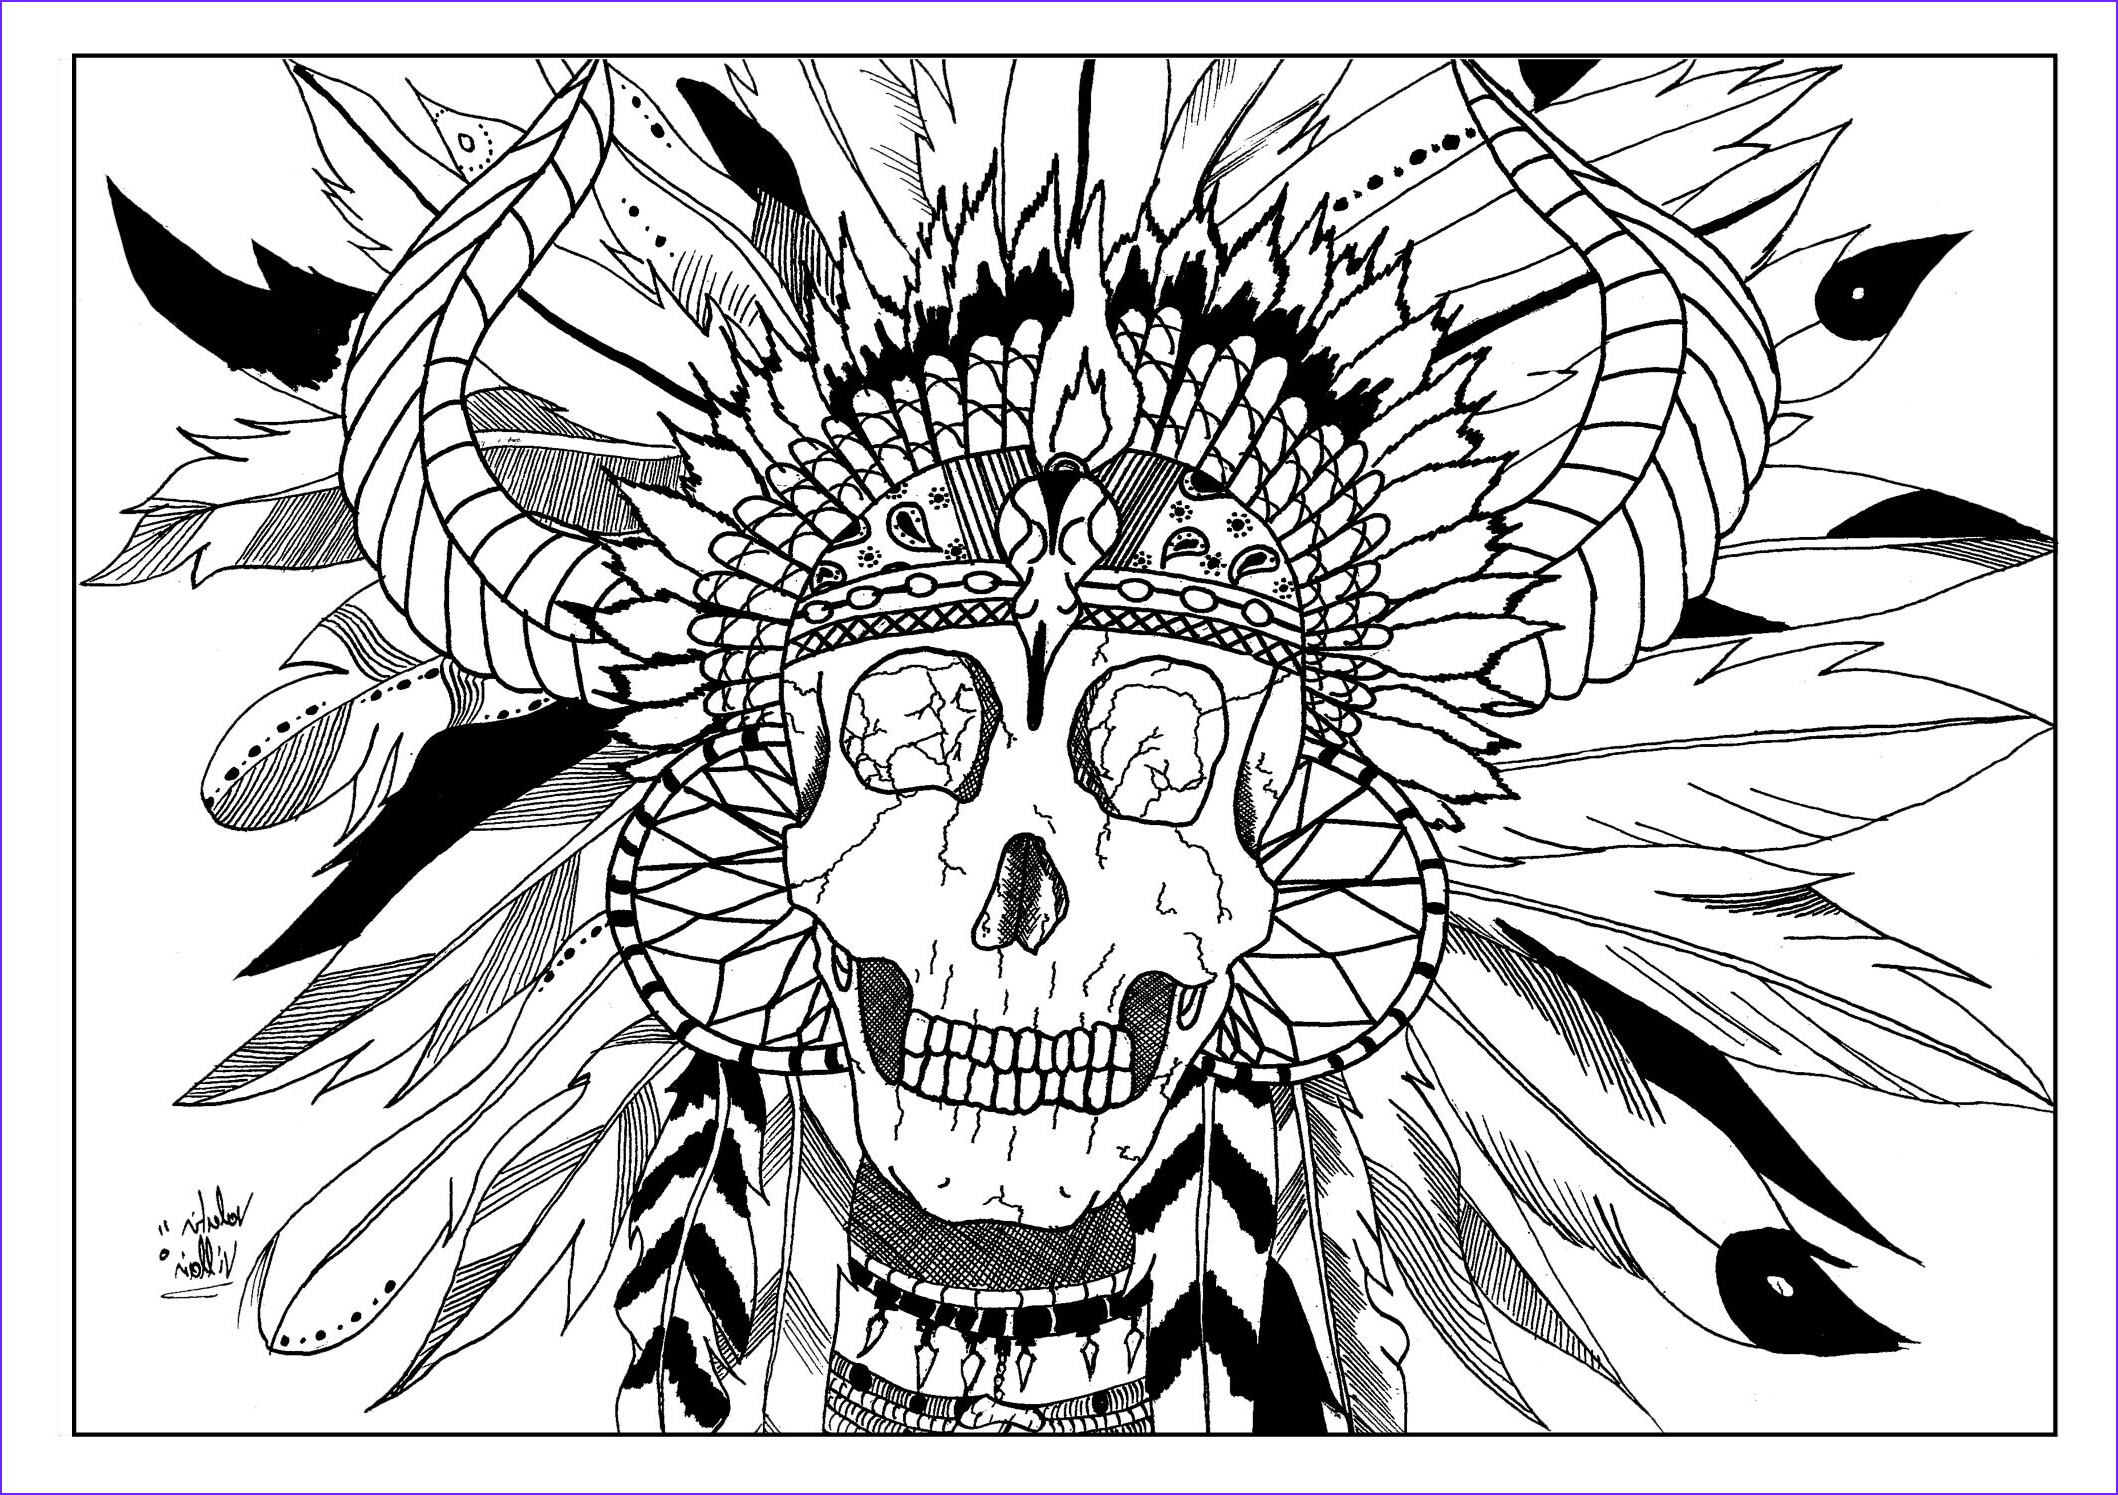 American Indian Coloring Pages New Collection Skull Indian Native American Adult Coloring Pages